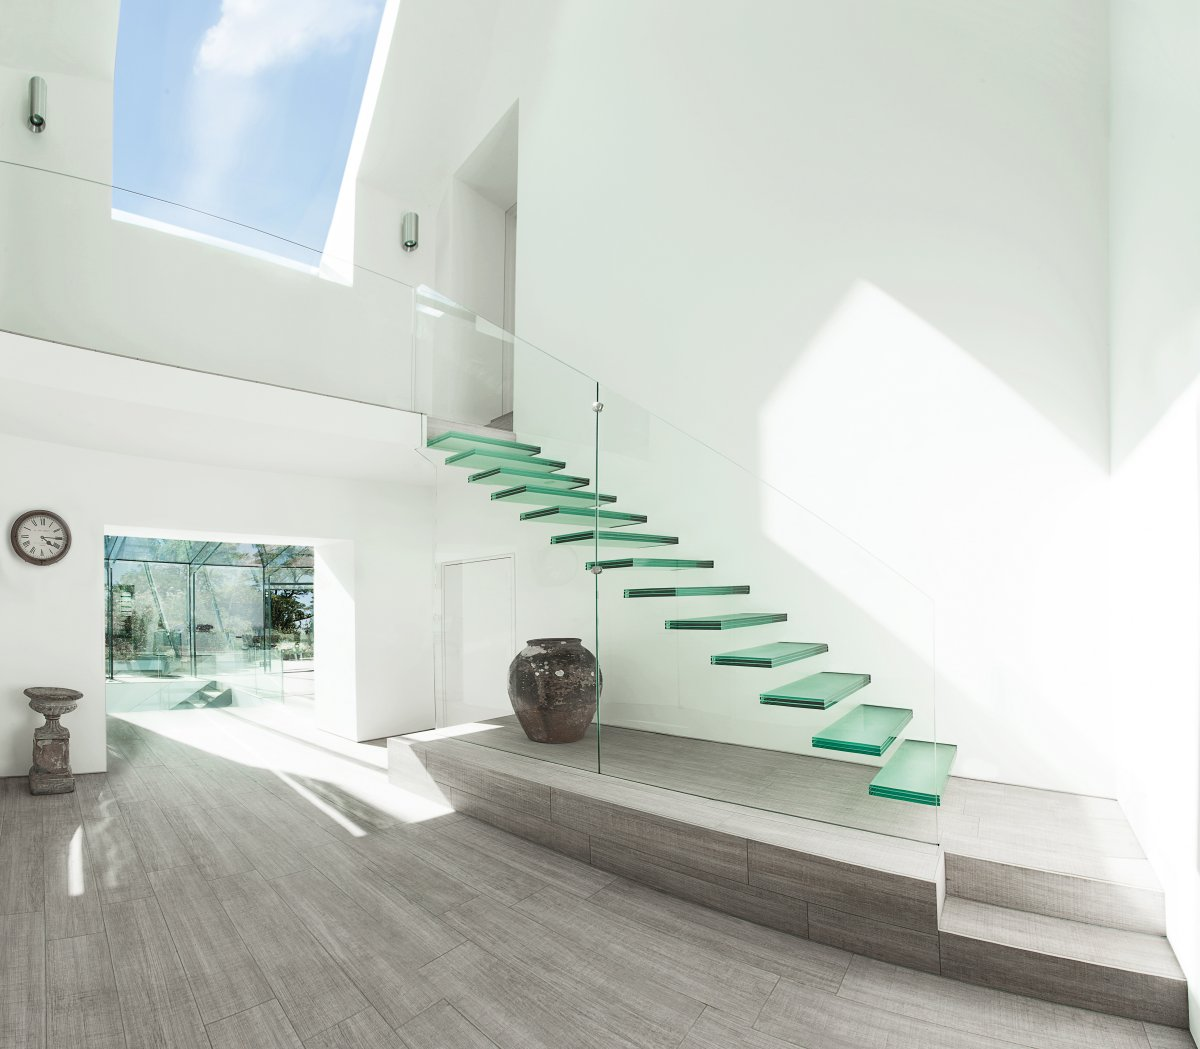 Interior Staircase Ideas 20 Glass Staircase Wall Designs With A Graceful Impact On The